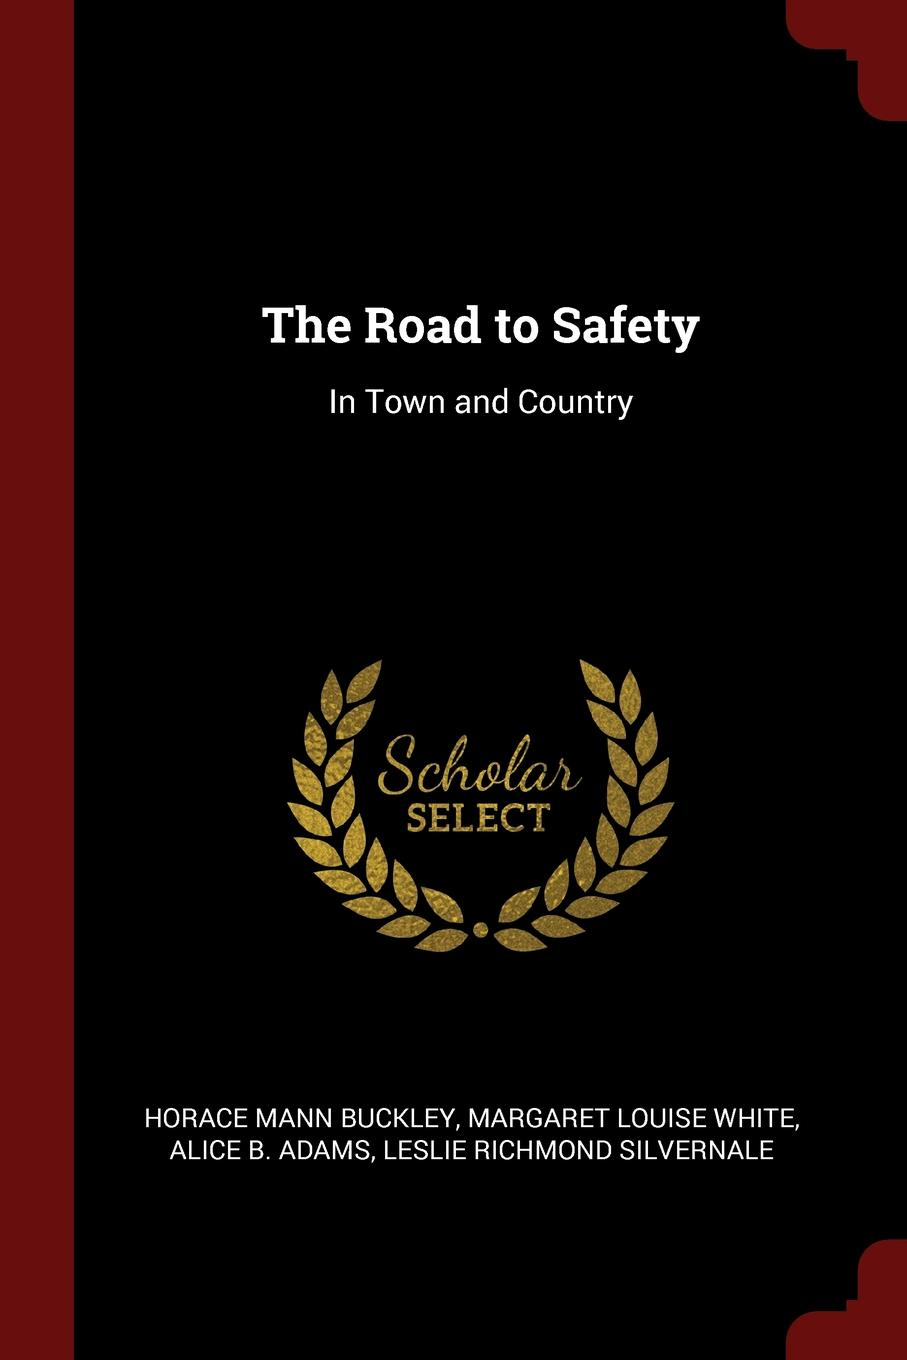 Horace Mann Buckley, Margaret Louise White, Alice B. Adams The Road to Safety. In Town and Country